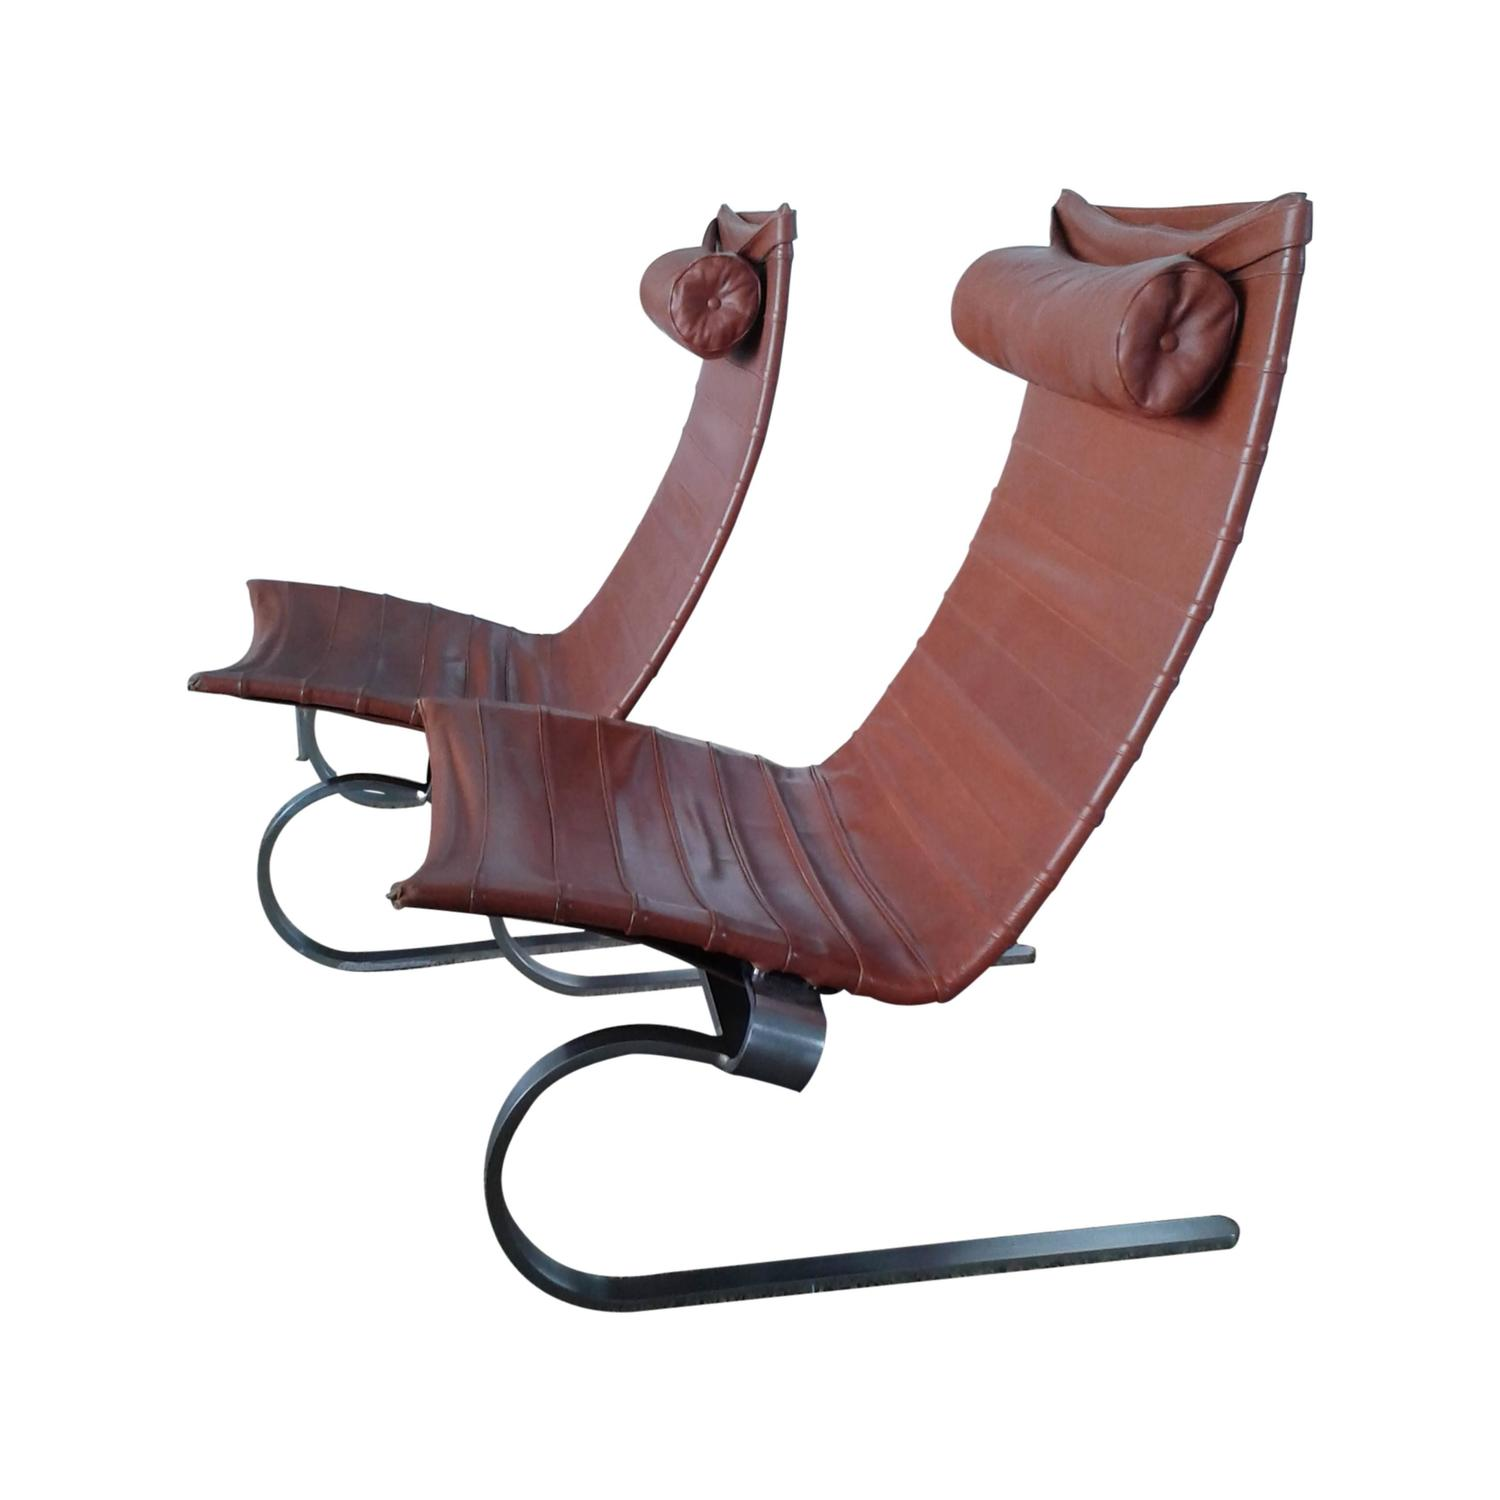 Poul Kjærholm PK 20 lounge chair